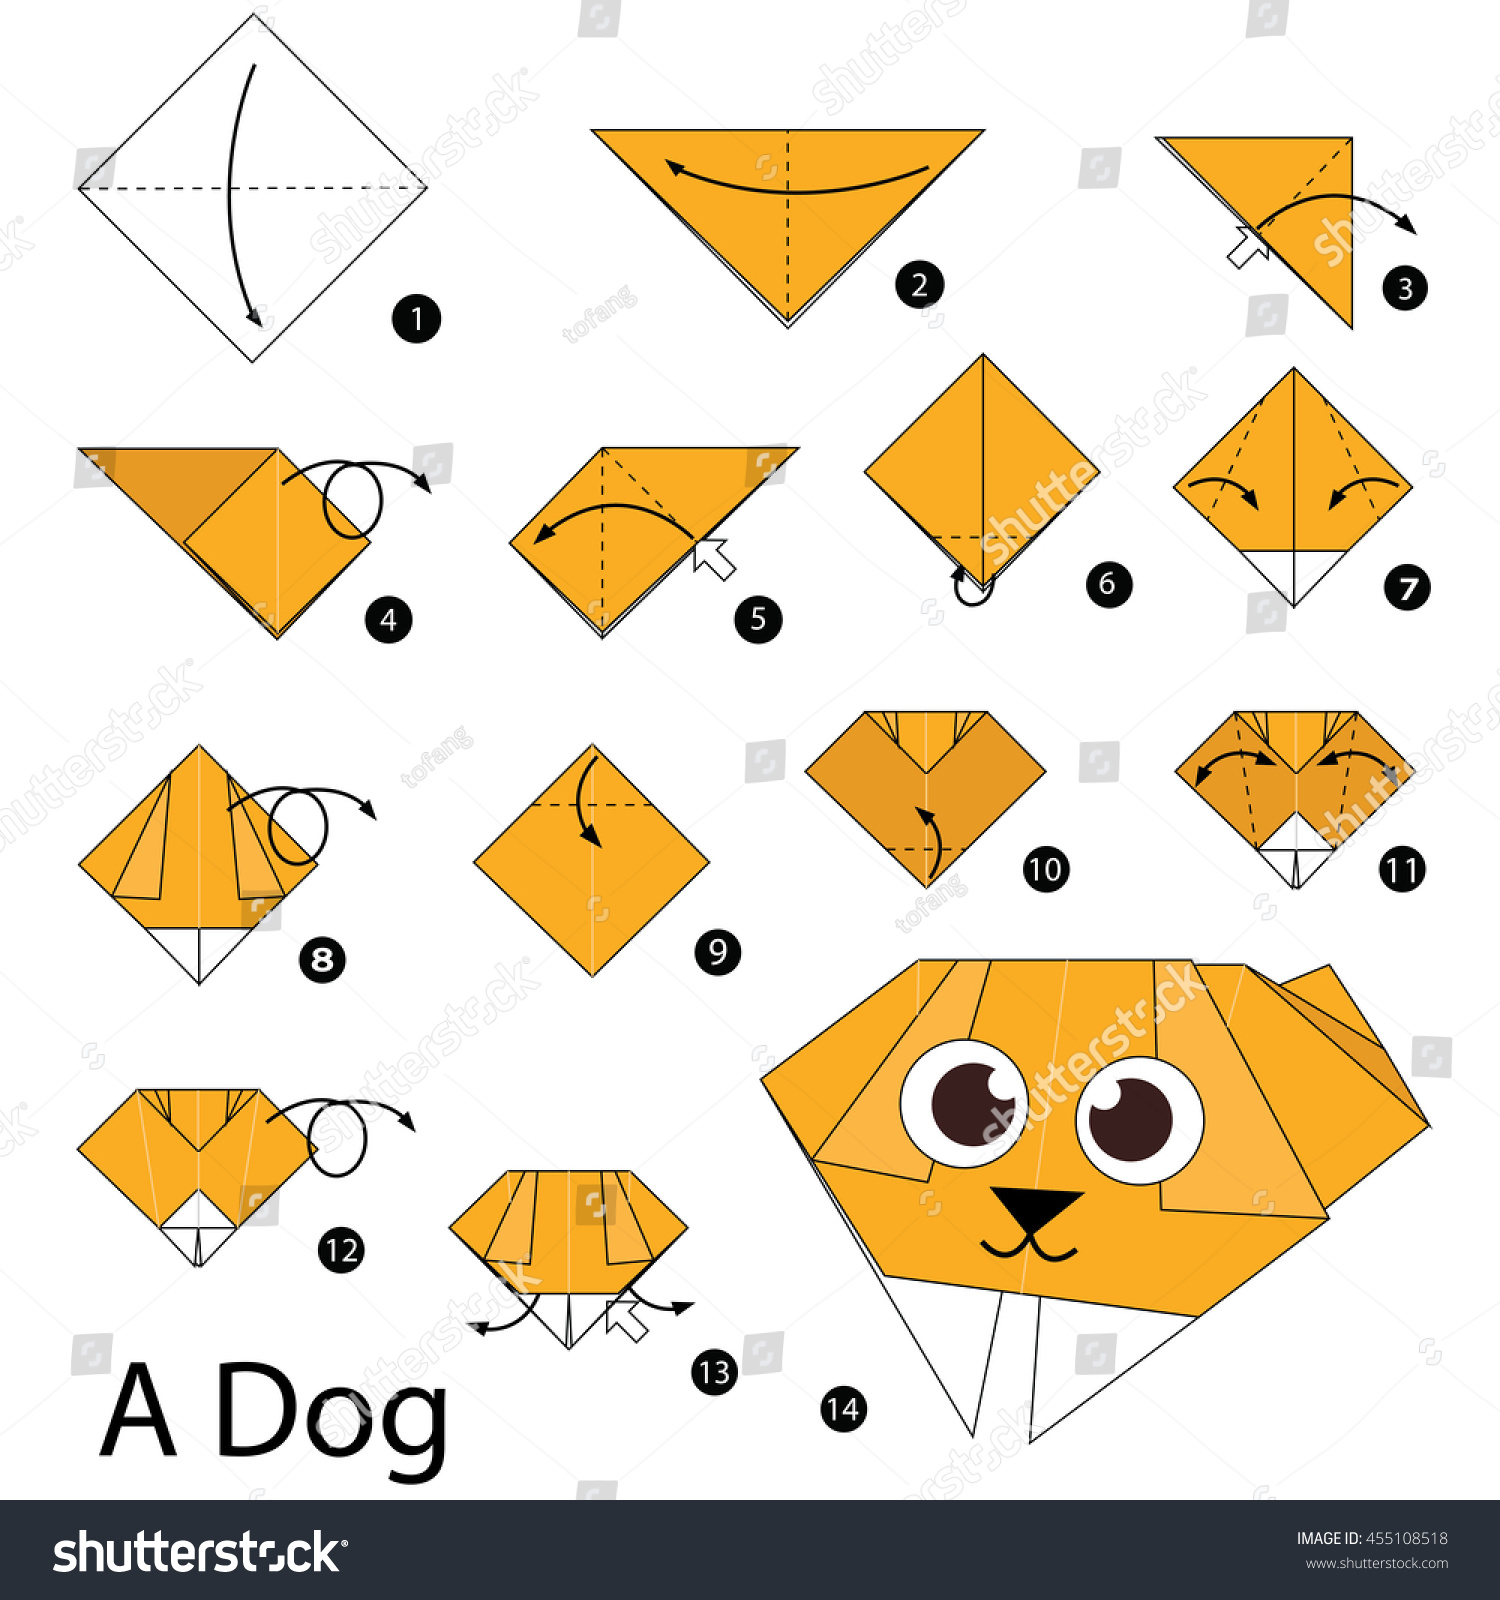 Step By Instructions How Make Stock Vector Royalty Free Origami Diagrams And Designs To Fold An Dog A